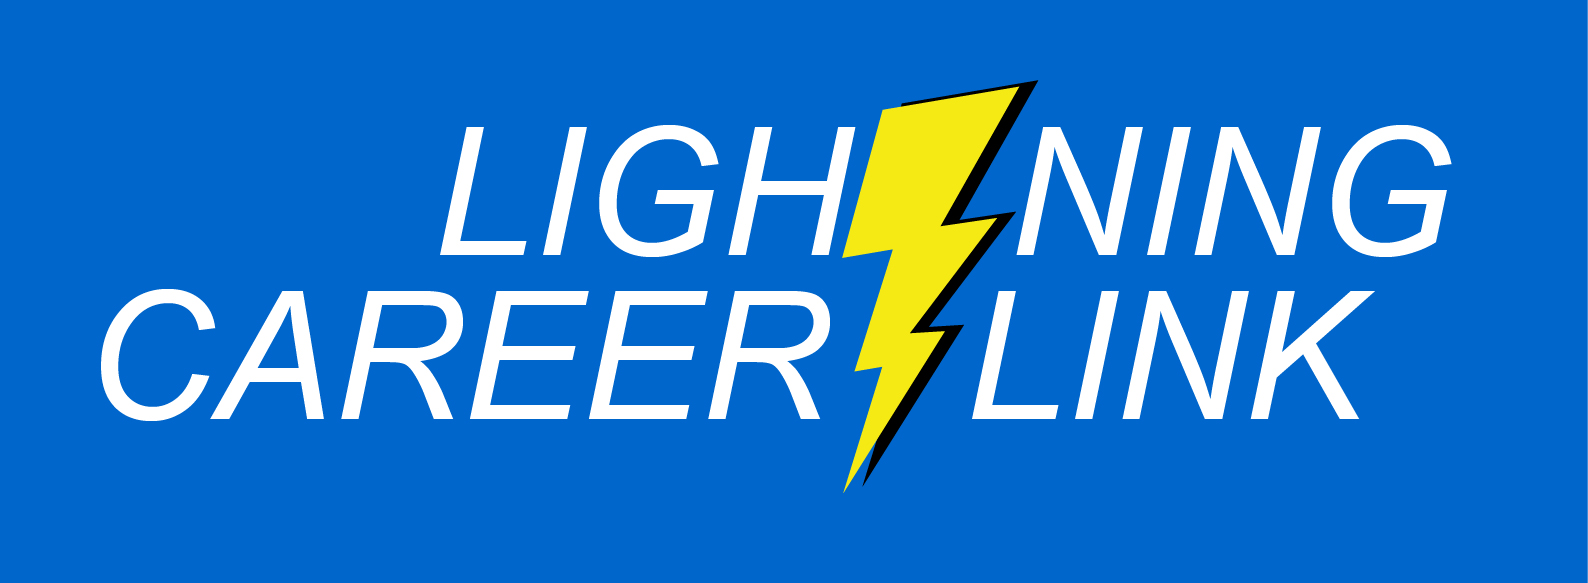 Lightning CareerLink Logo